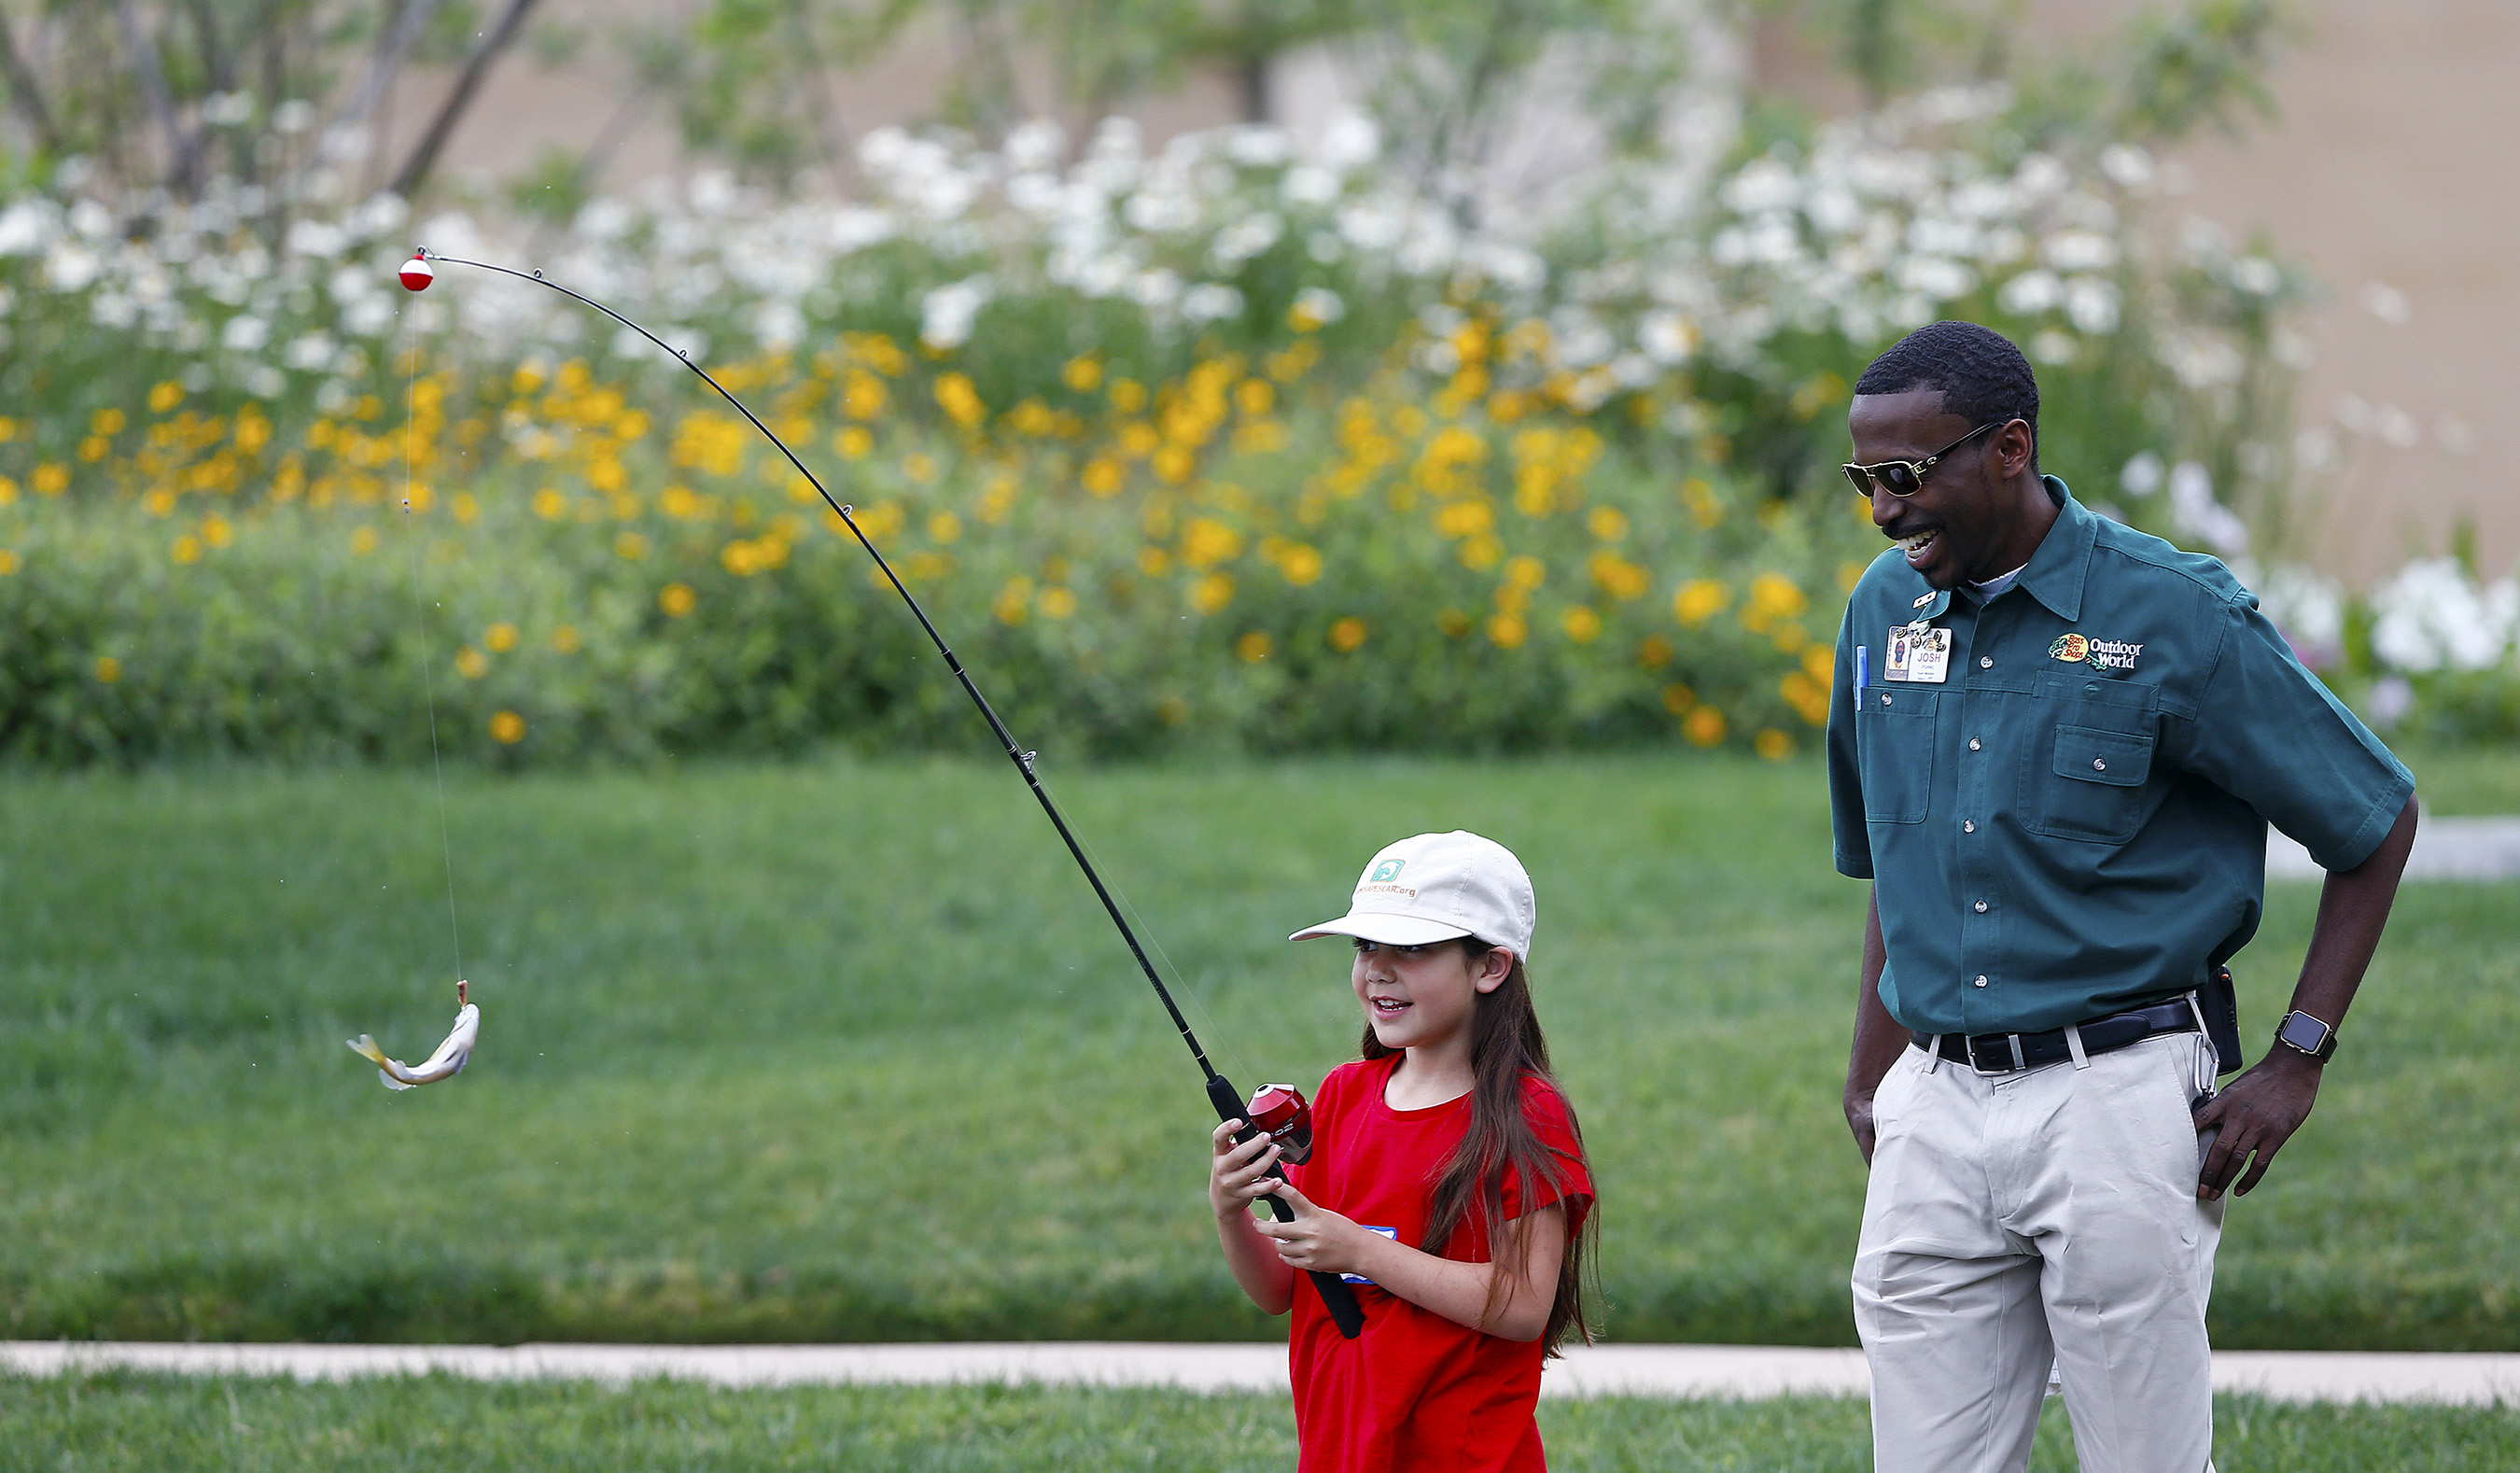 A child catches a fish during a Recreational Boating & Fishing Foundation (RBFF) event at the George Bush Presidential Library on Thursday, April 14, 2016, in College Station, Texas. RBFF is a nonprofit organization whose mission is to increase participation in recreational angling and boating, thereby protecting and restoring the nation's aquatic natural resources. (Aaron M. Sprecher/AP Images for RBFF)